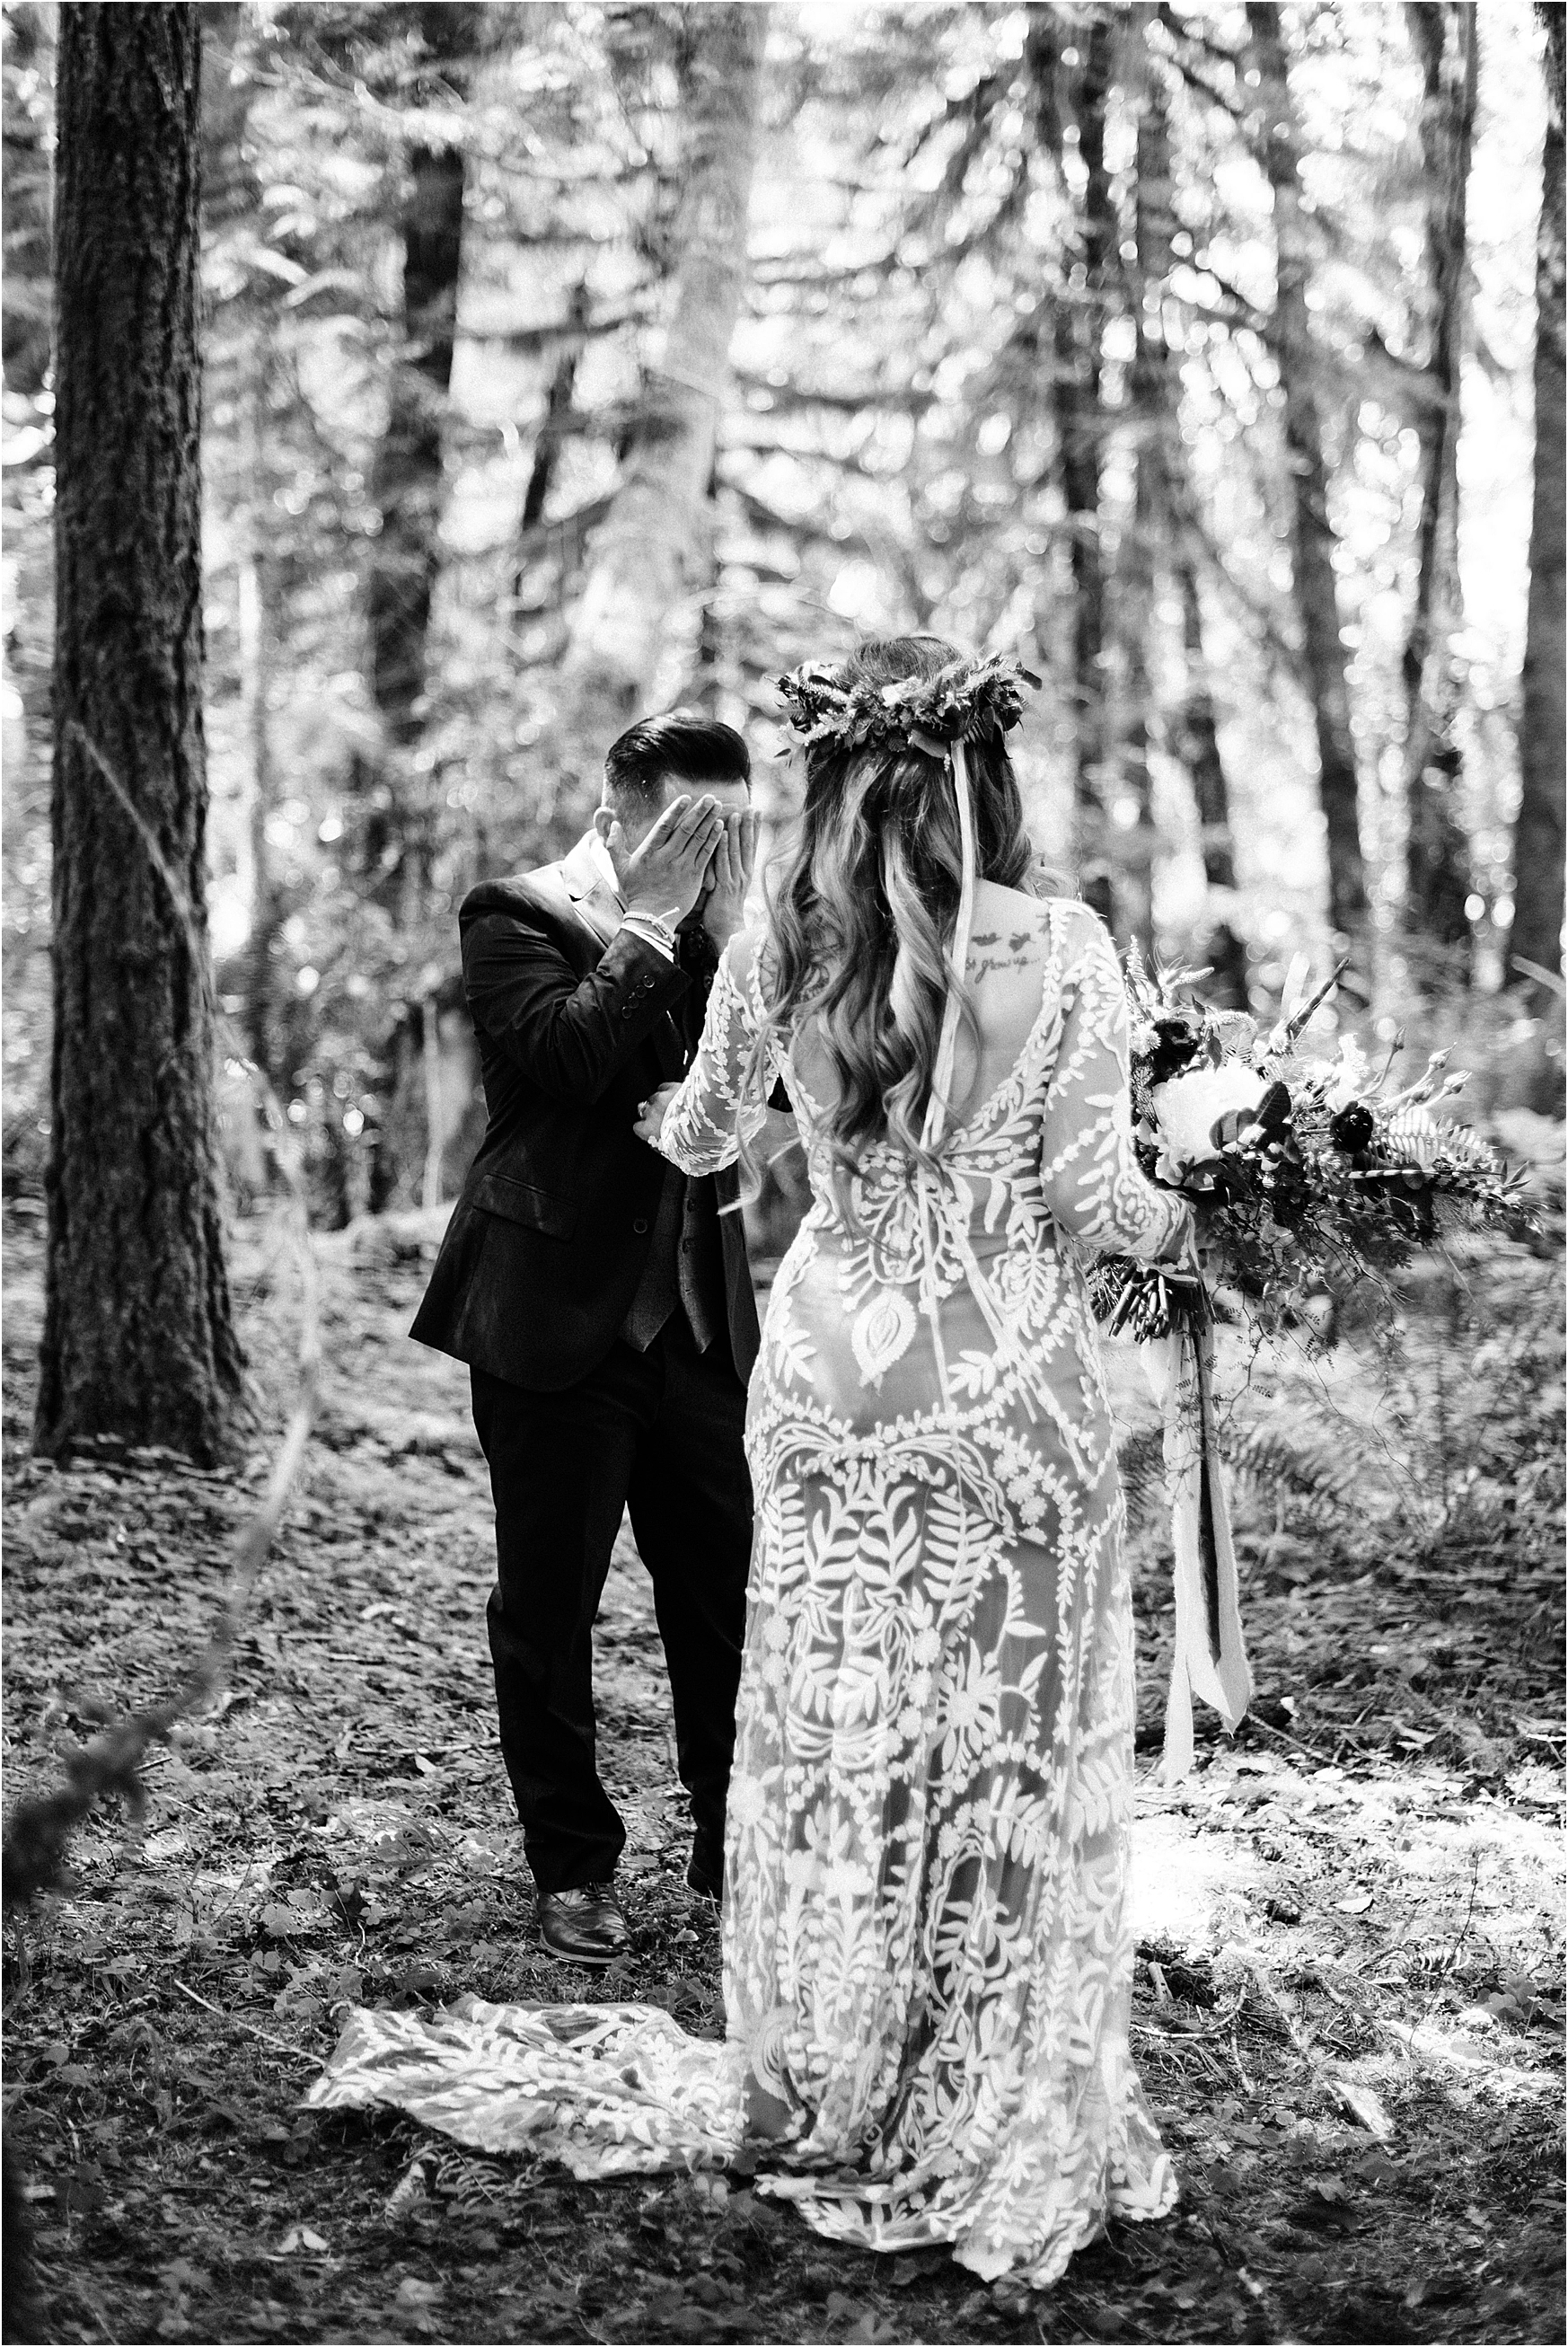 Emotional first look at Cassy & Viva's bohemian Oregon destination wedding at Camp Lane. Image by Forthright Photo.